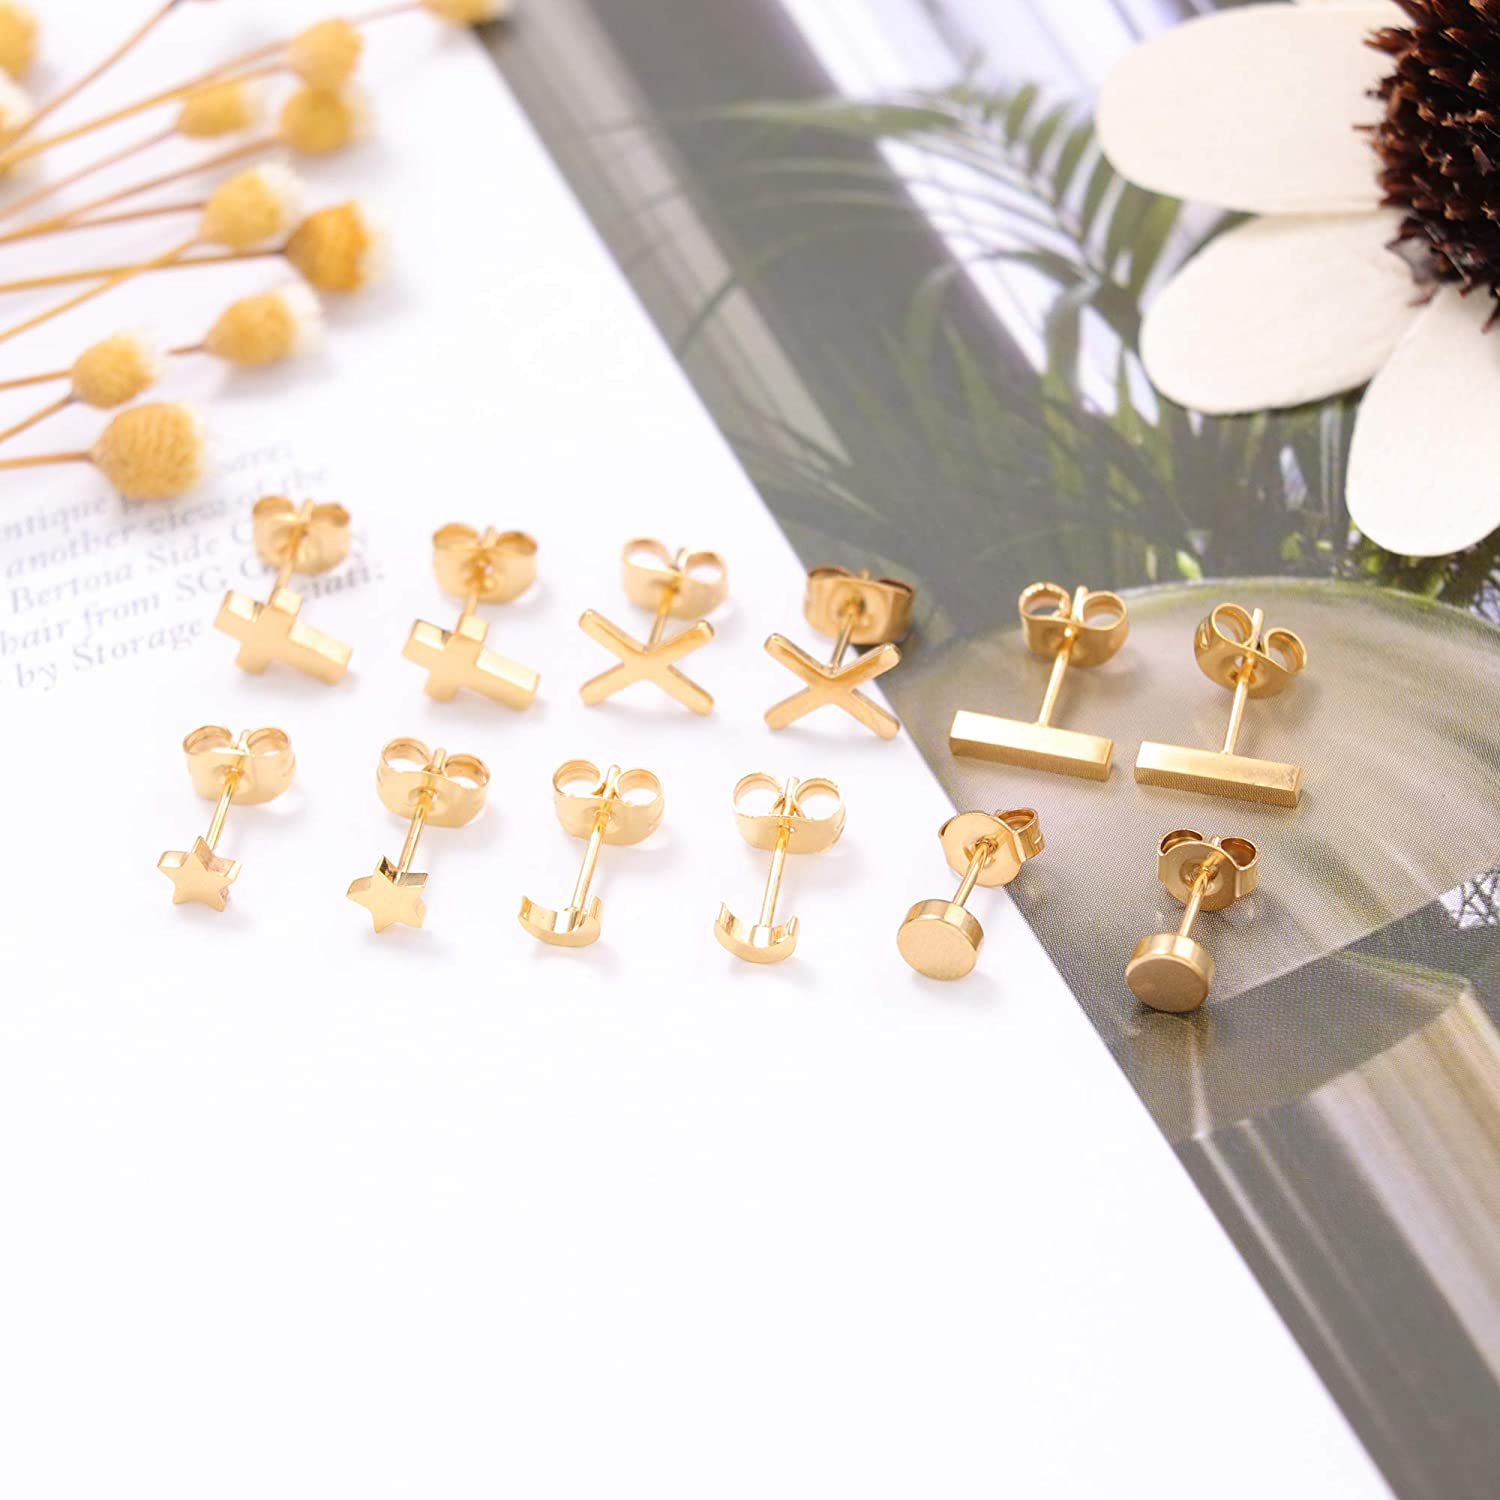 Hanpabum 6 Pairs Stainless Steel Stud Earrings for Women Tiny Stud Bar Earring Geometric Earrings Set